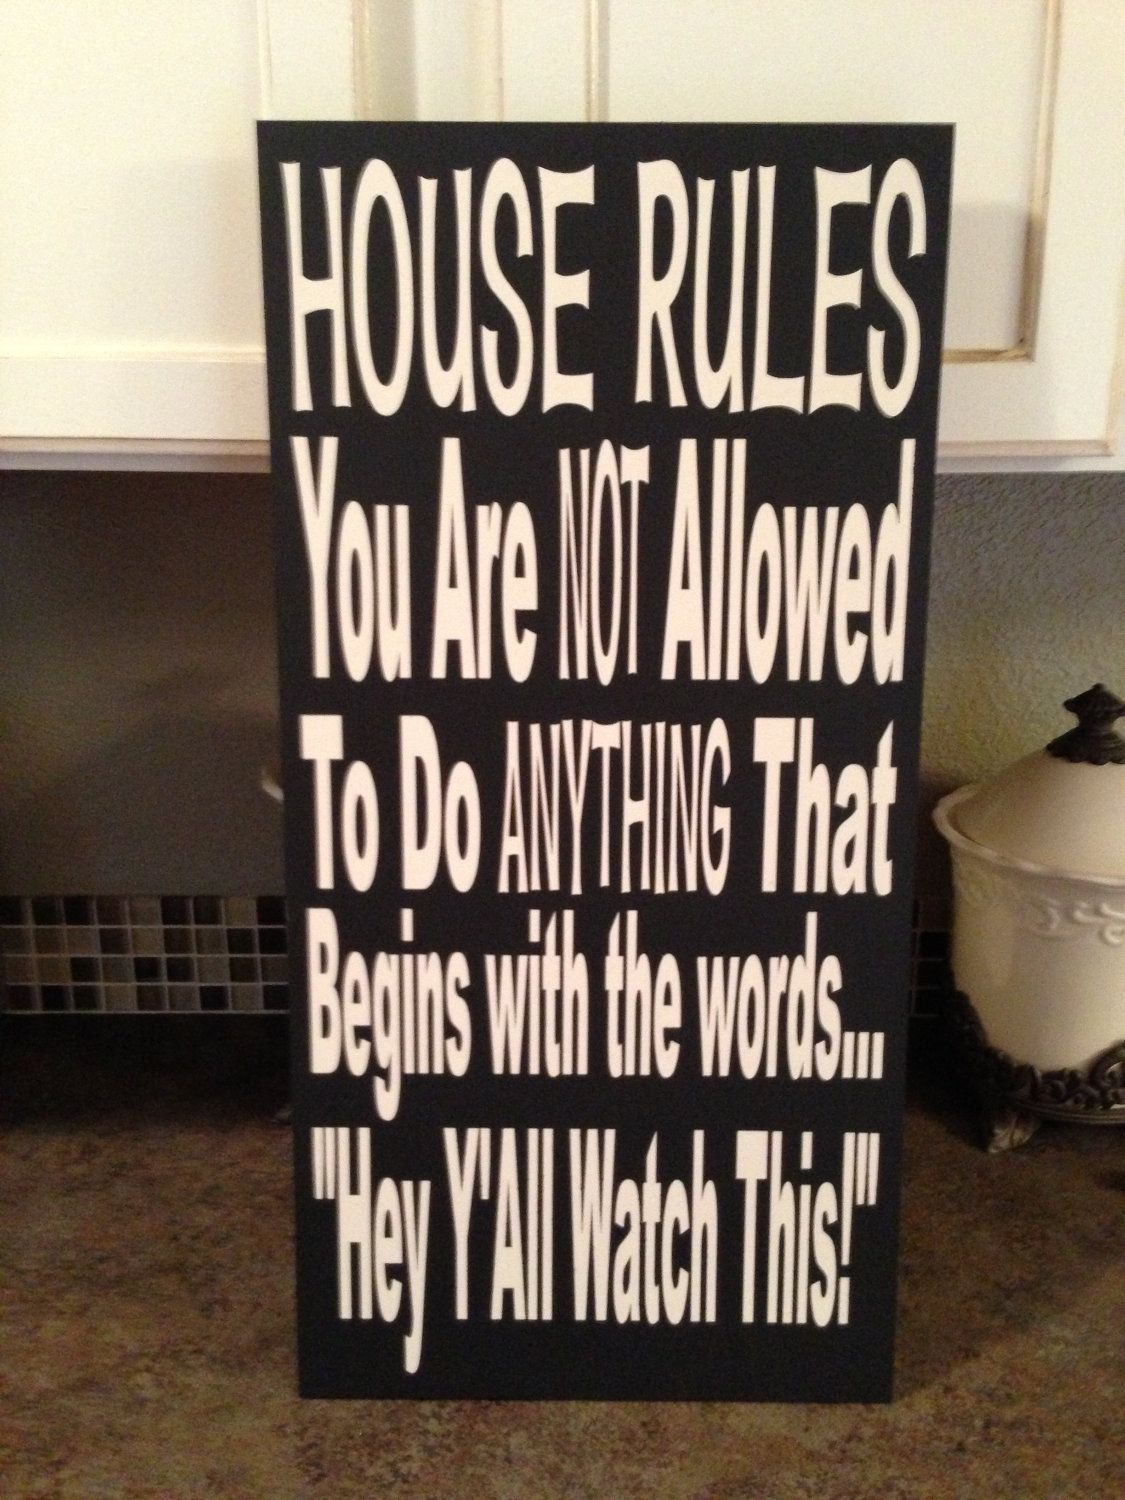 Funny House Rules - Year of Clean Water